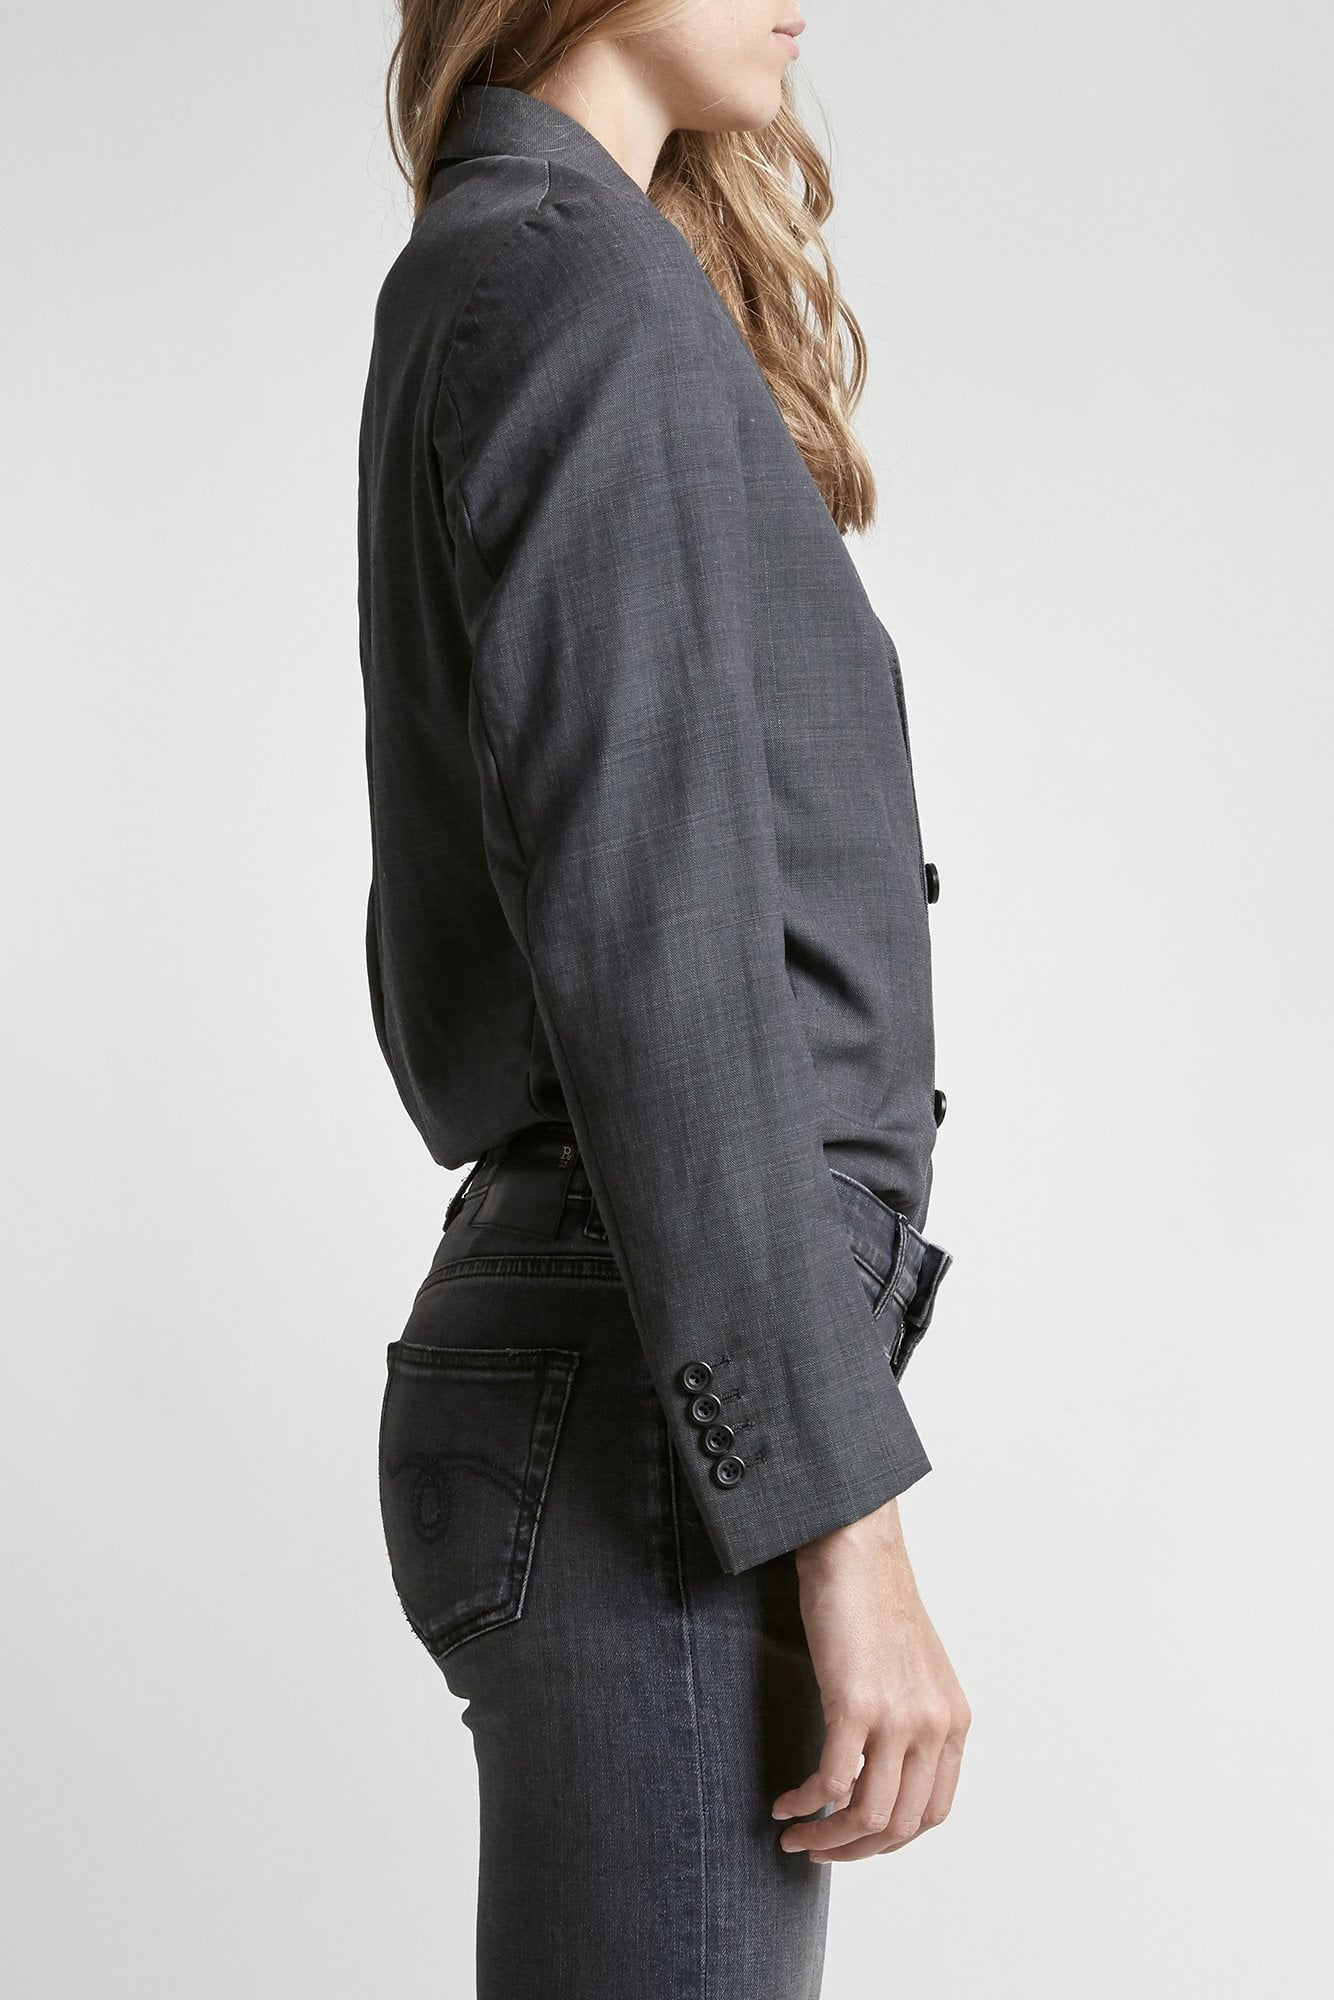 Tucked Boyfriend Blazer-Grey